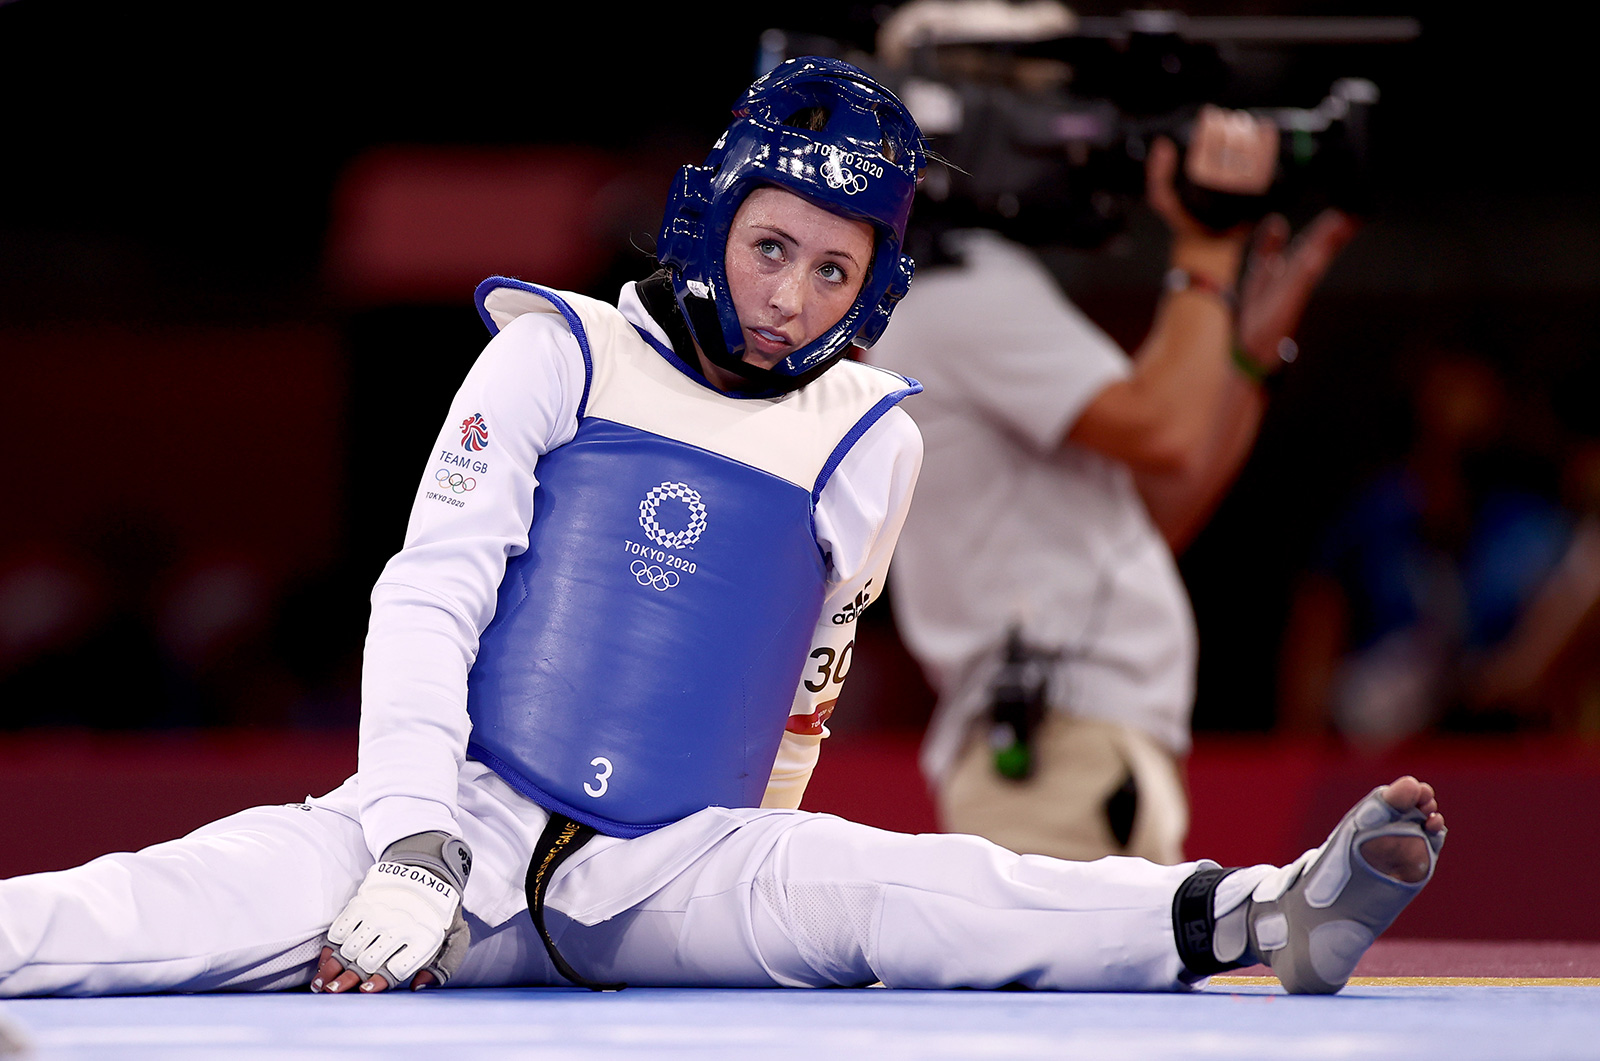 Jade Jones of Great Britain sits dejected after losing against Kimia Alizadeh Zonouzi of the IOC Refugee Team after a Taekwondo round on July 25.